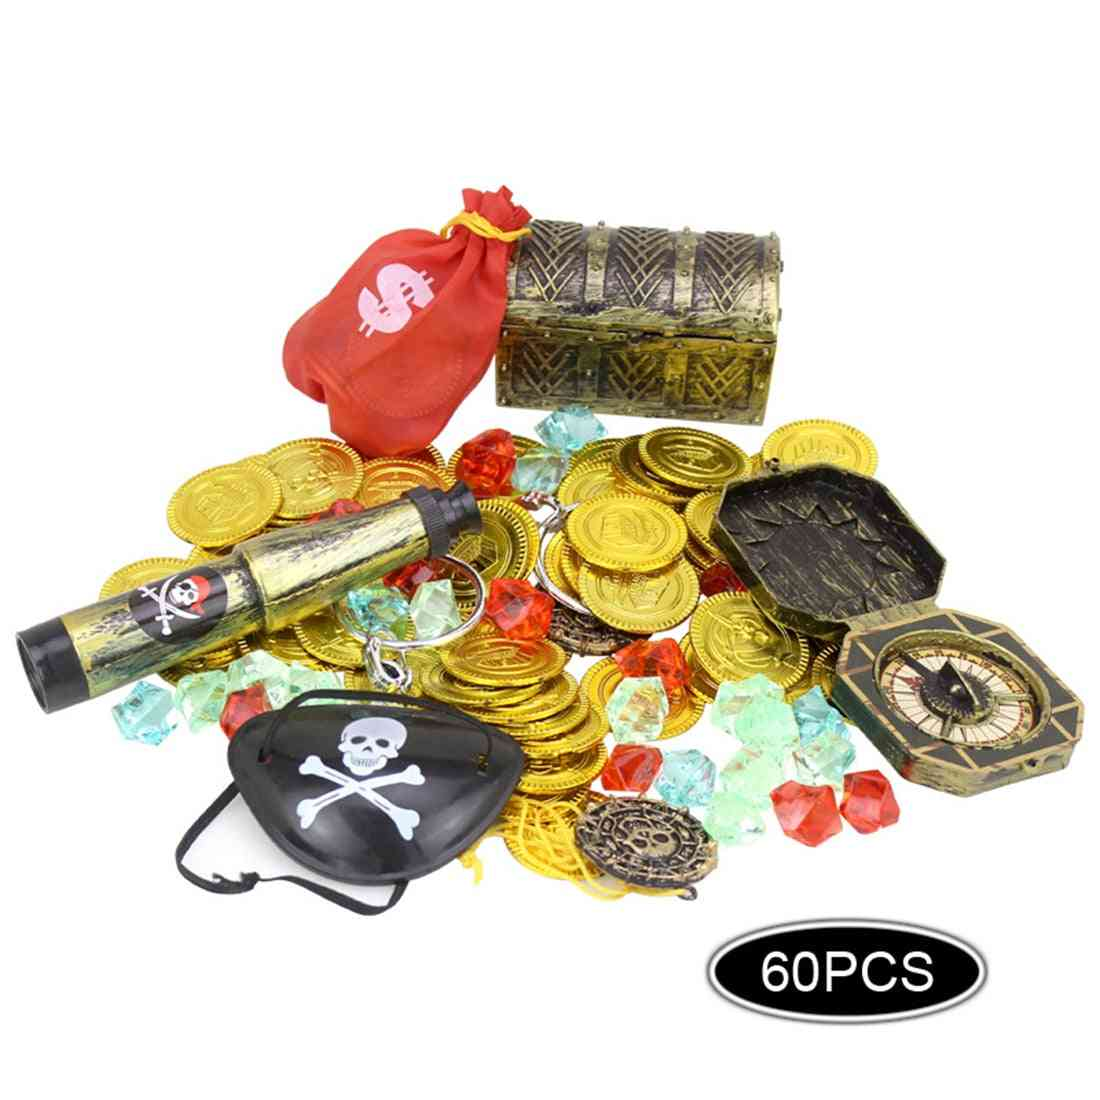 60pcs Pirates  Set Pirate Cover Gold Coins Pirate -treasure Box Kid's Party Supply